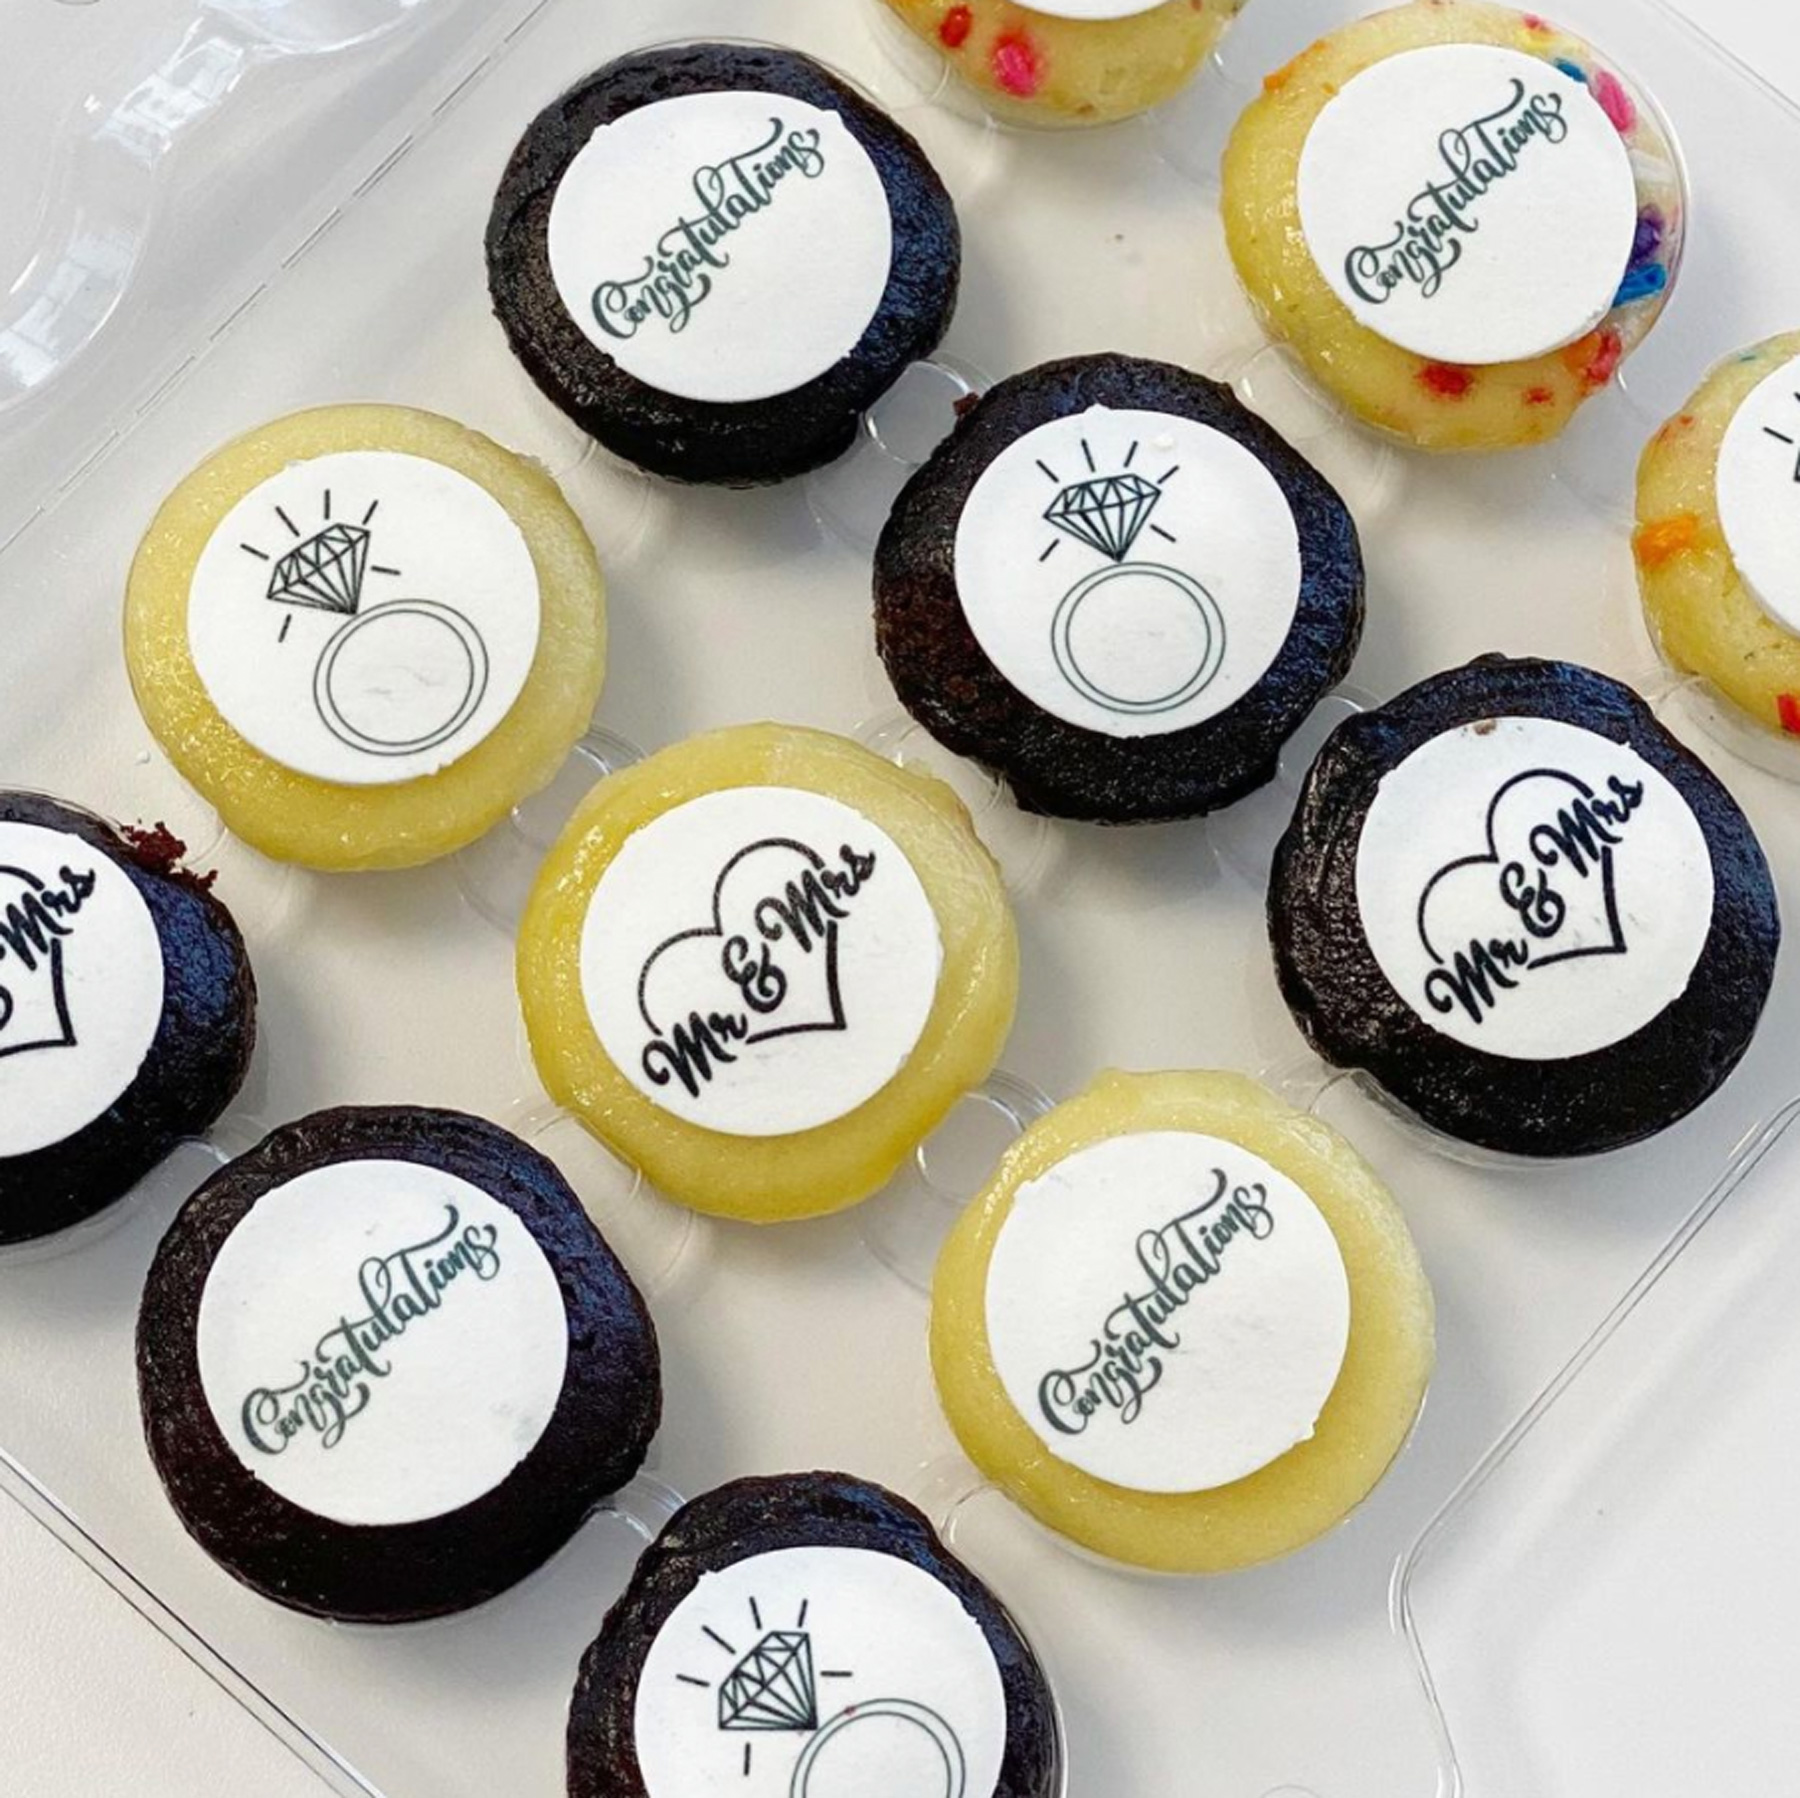 Engagement Gifts Ideas: Spots NYC personalized mini cupcake delivery